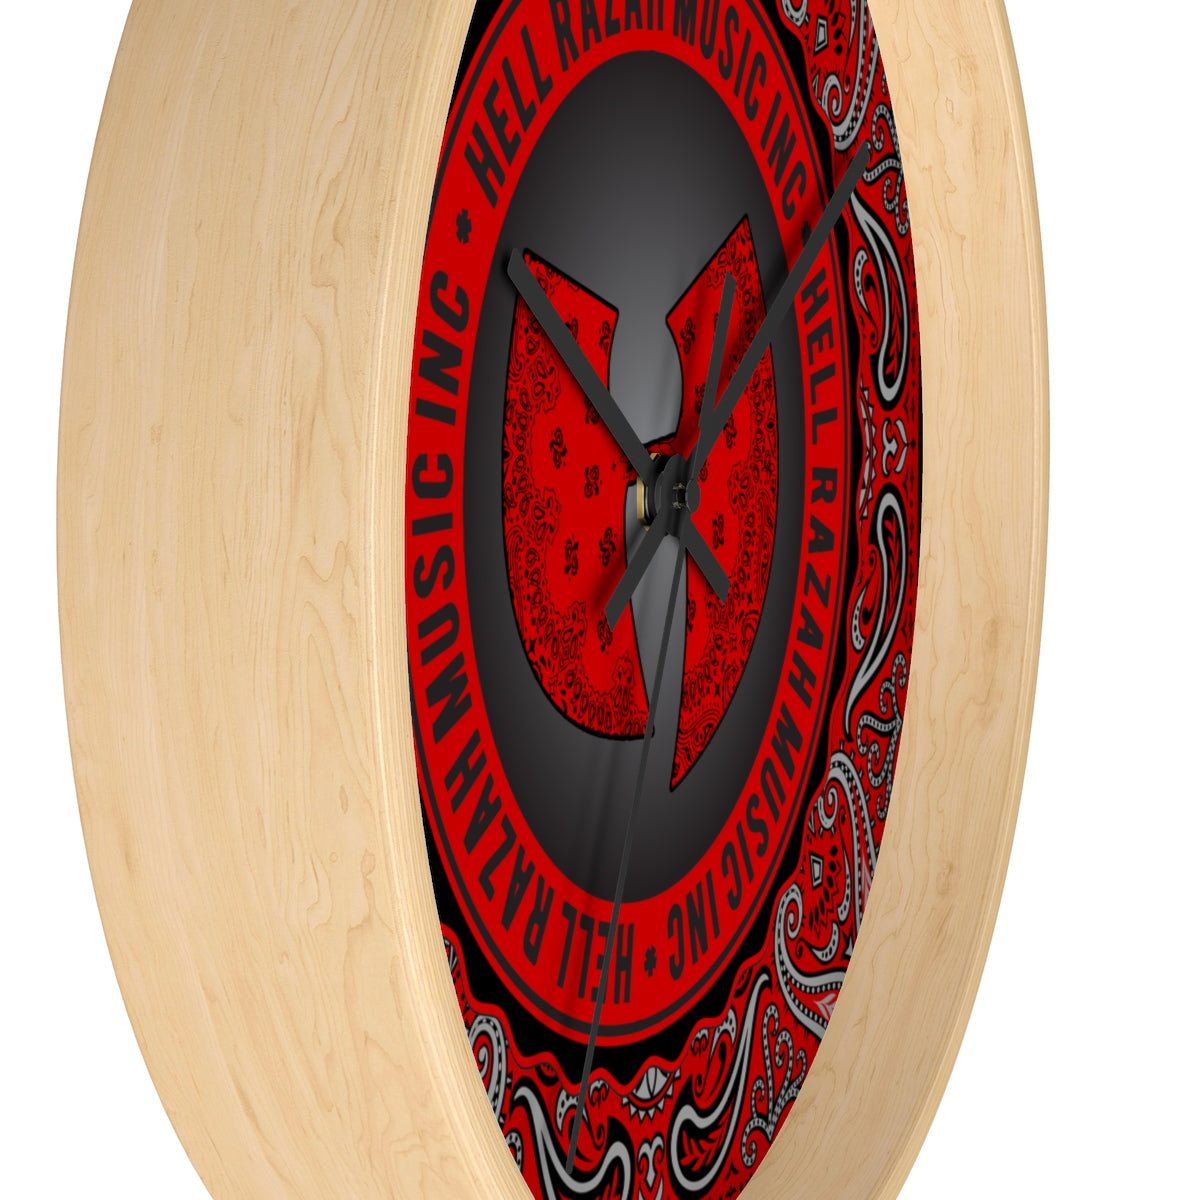 Official Hell Razah Music Inc Red Bandana Logo Limited Edition Collectors Wall Clock Heaven Razah Graphics by Culture Freedom